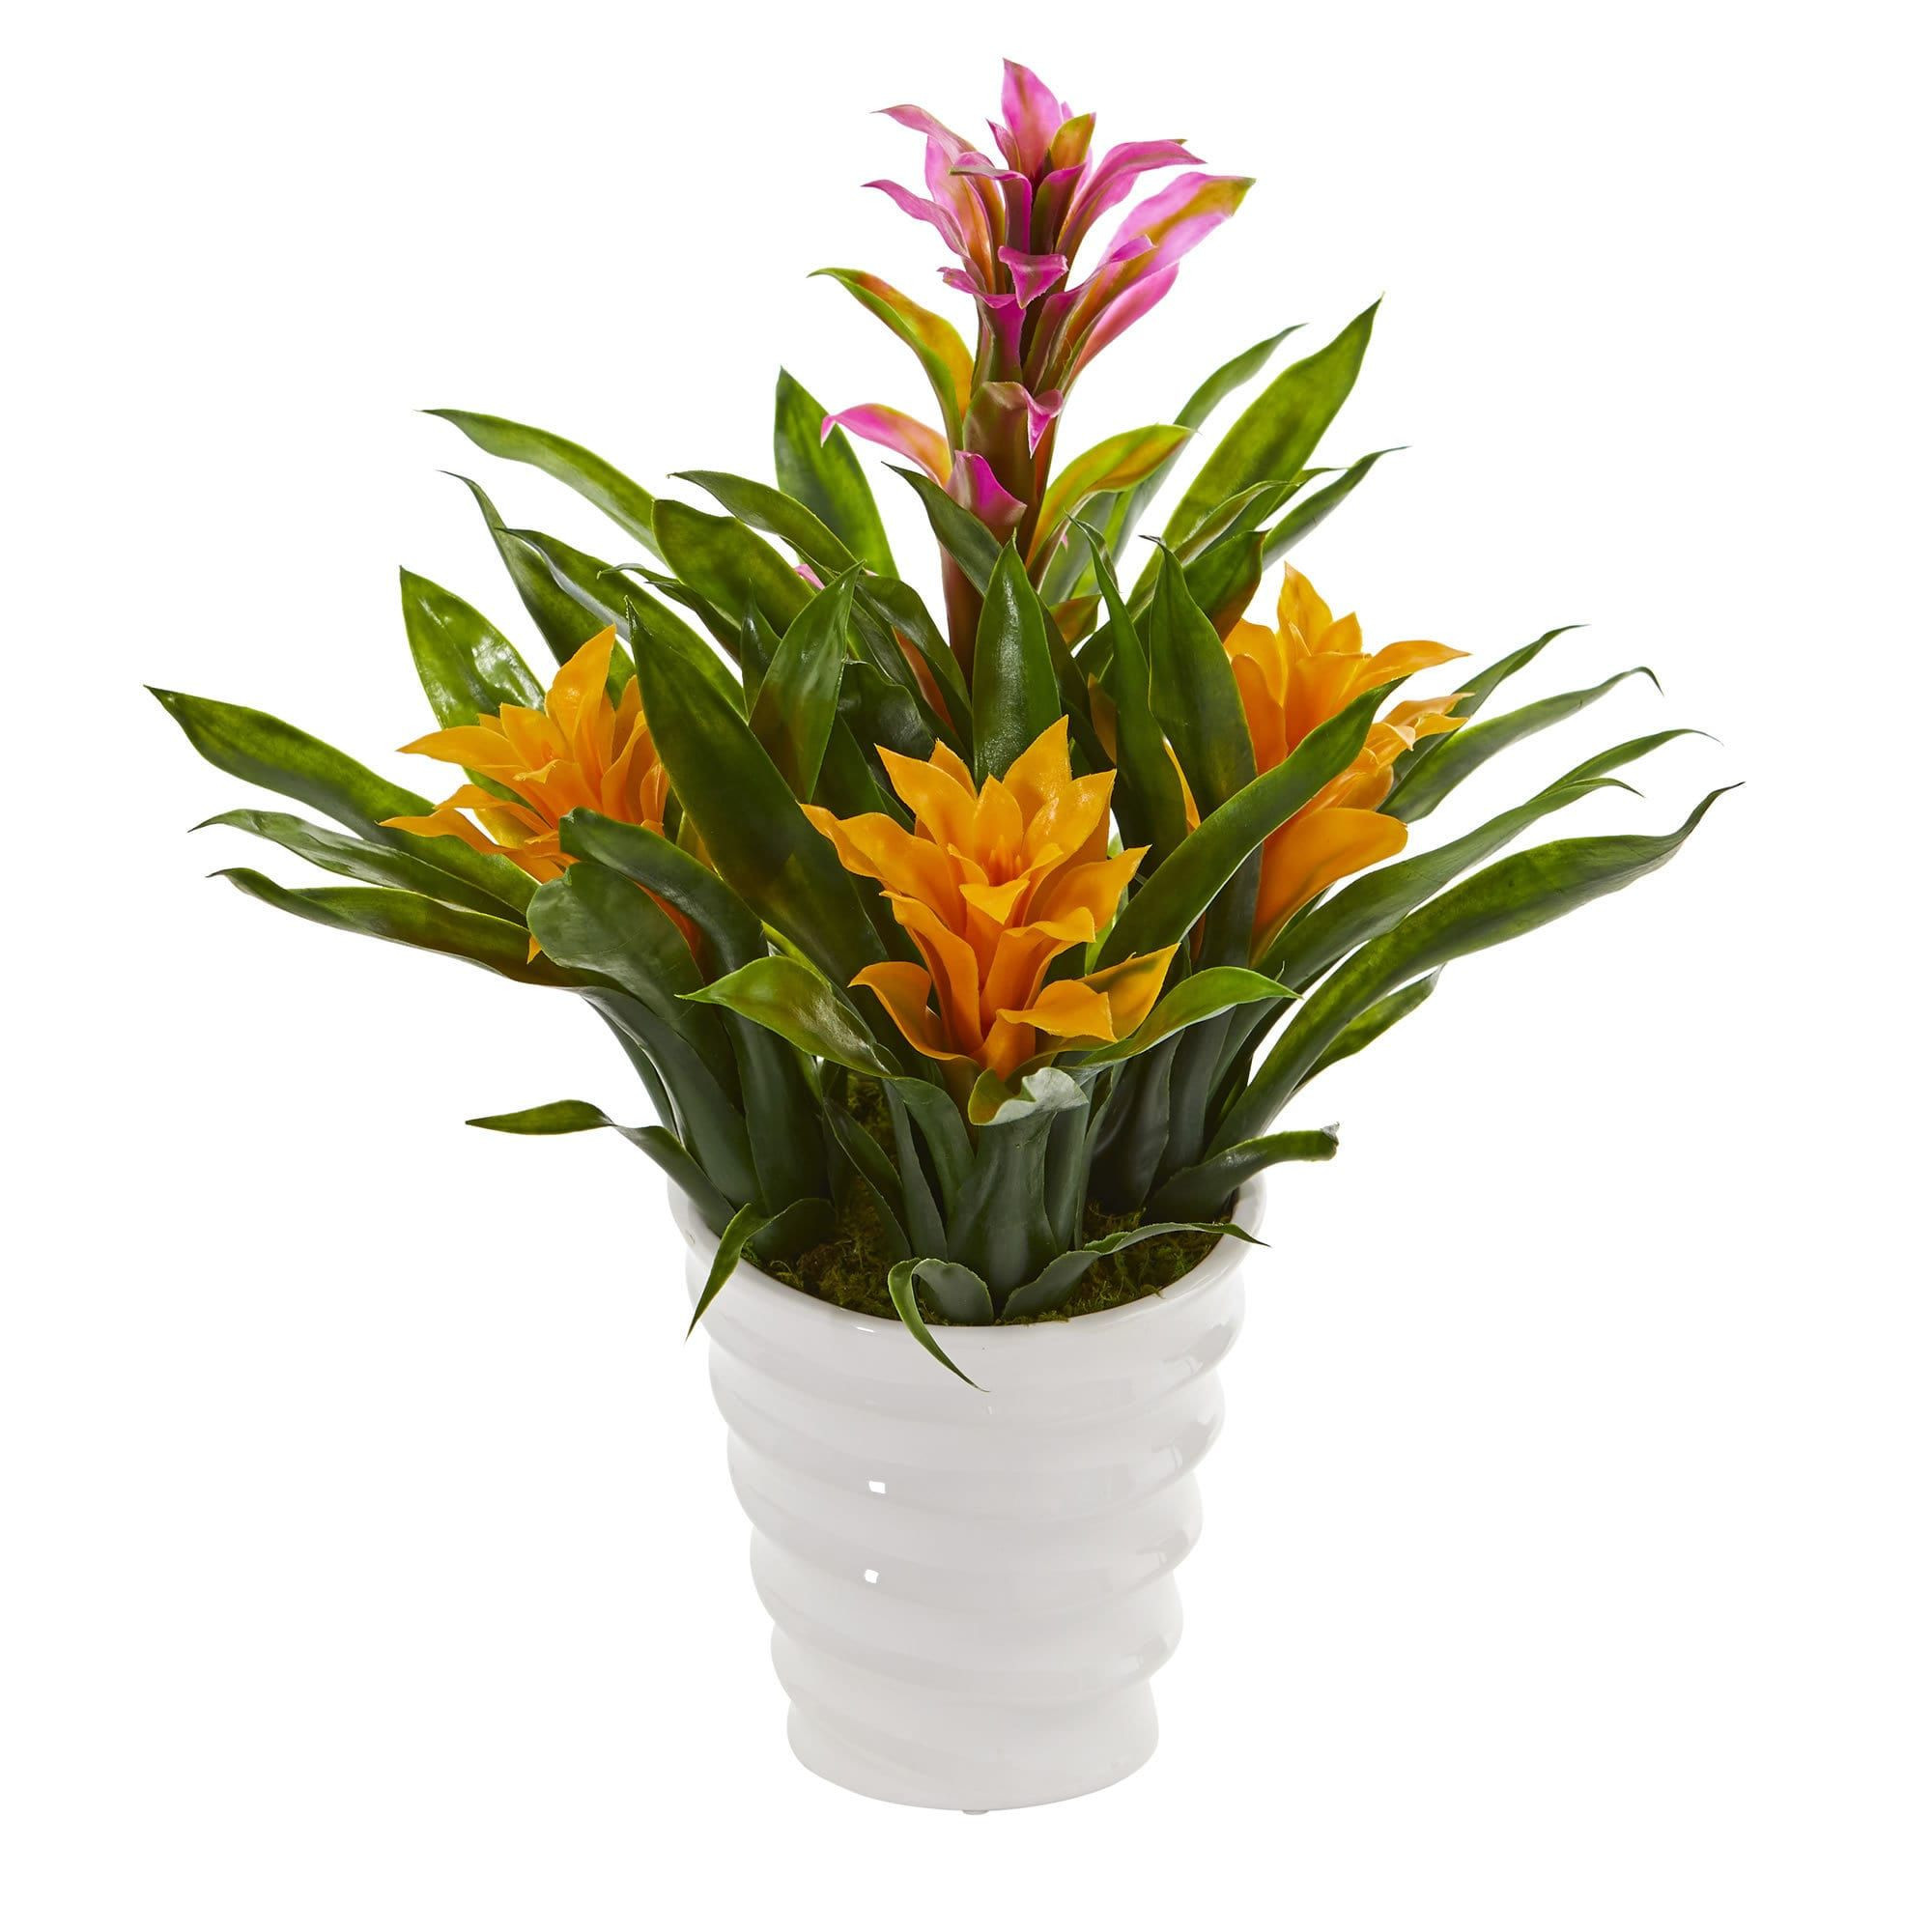 Yellow Flower Vase Of Nearly Natural Bromeliad Artificial Plant In White Vase Purple Inside Nearly Natural Bromeliad Artificial Plant In White Vase Purple Yellow